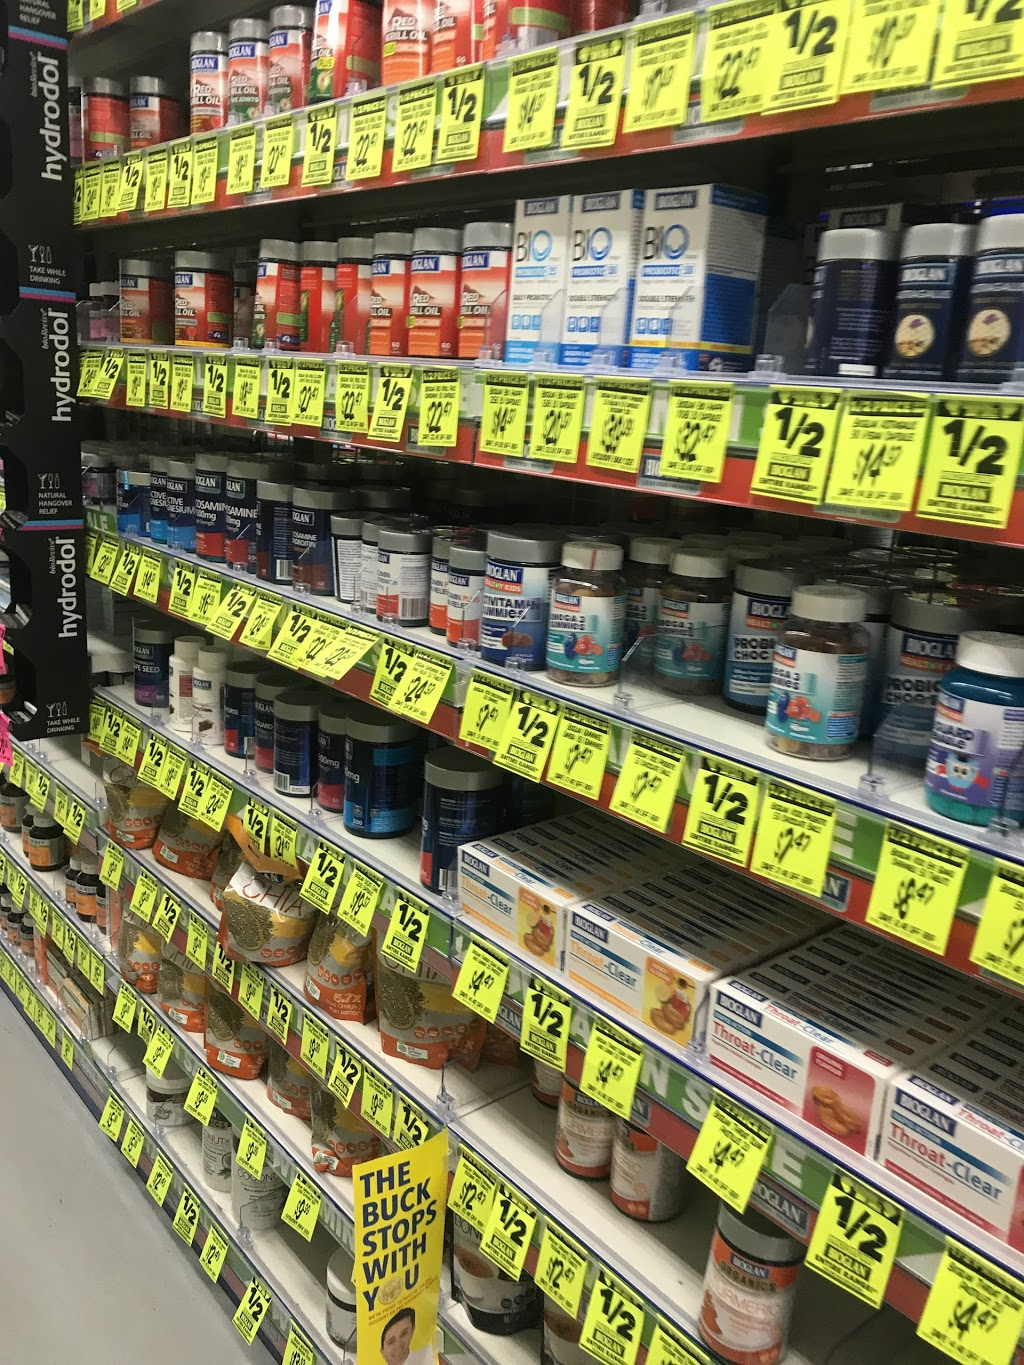 Chemist Warehouse Watergardens Town Centre   pharmacy   399 Melton Hwy Shop A005 Watergardens S/C, Taylors Lakes VIC 3038, Australia   0383616322 OR +61 3 8361 6322